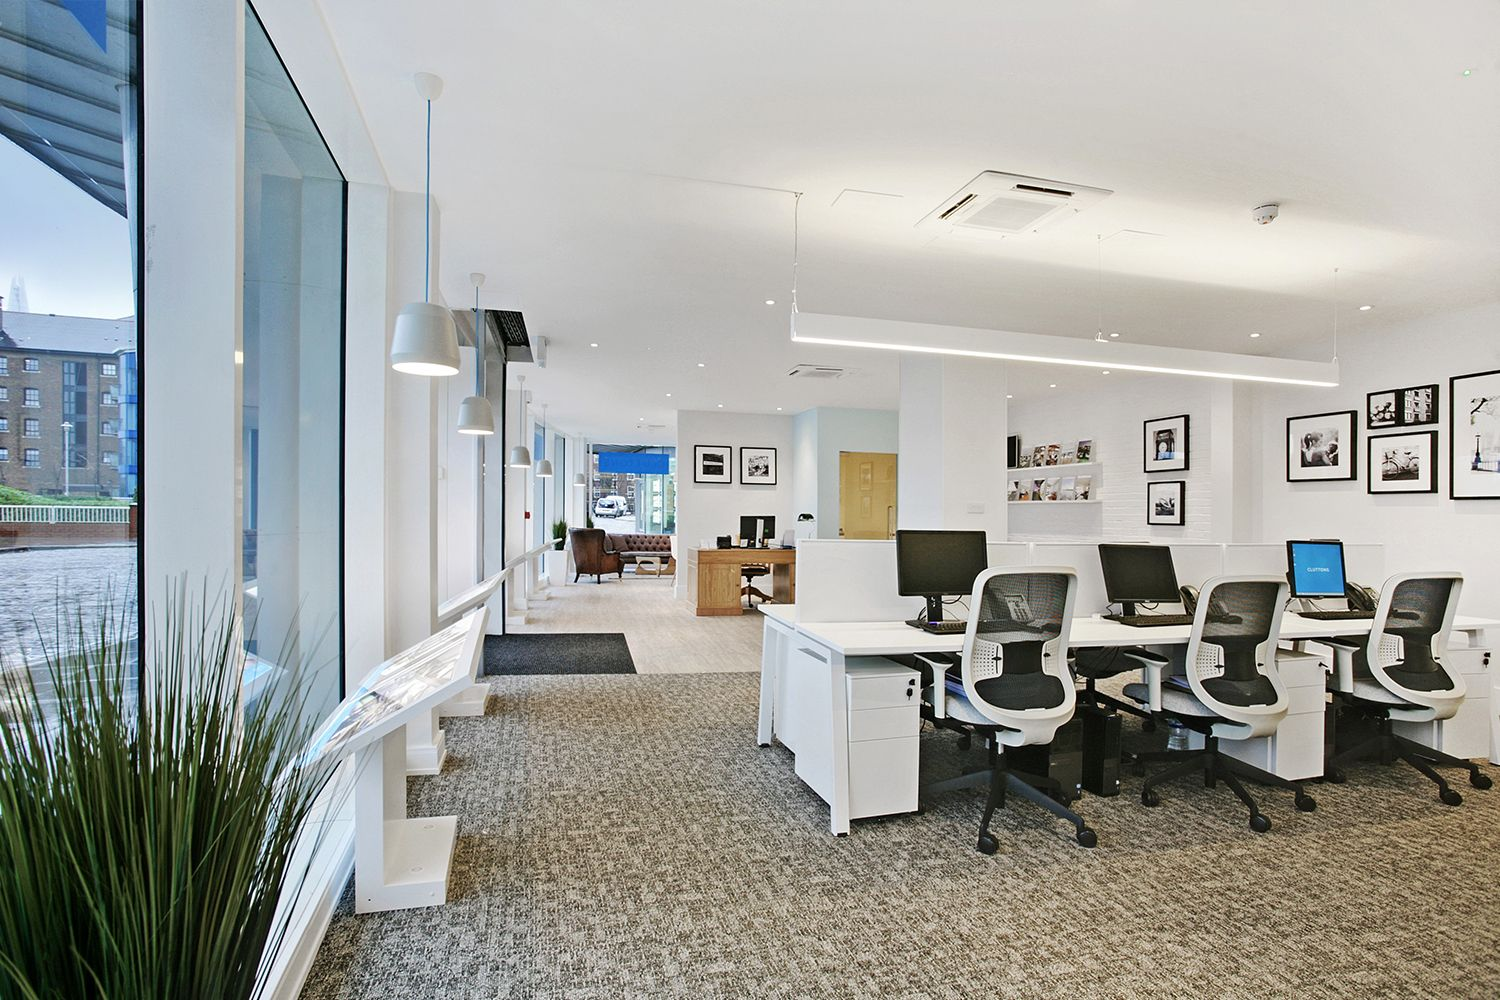 Estate agent office design Anthony Pepe Office Design Estate Agent Design Retail Design Branch Design Mpl Interiors Office Design Estate Agent Design Retail Design Branch Design